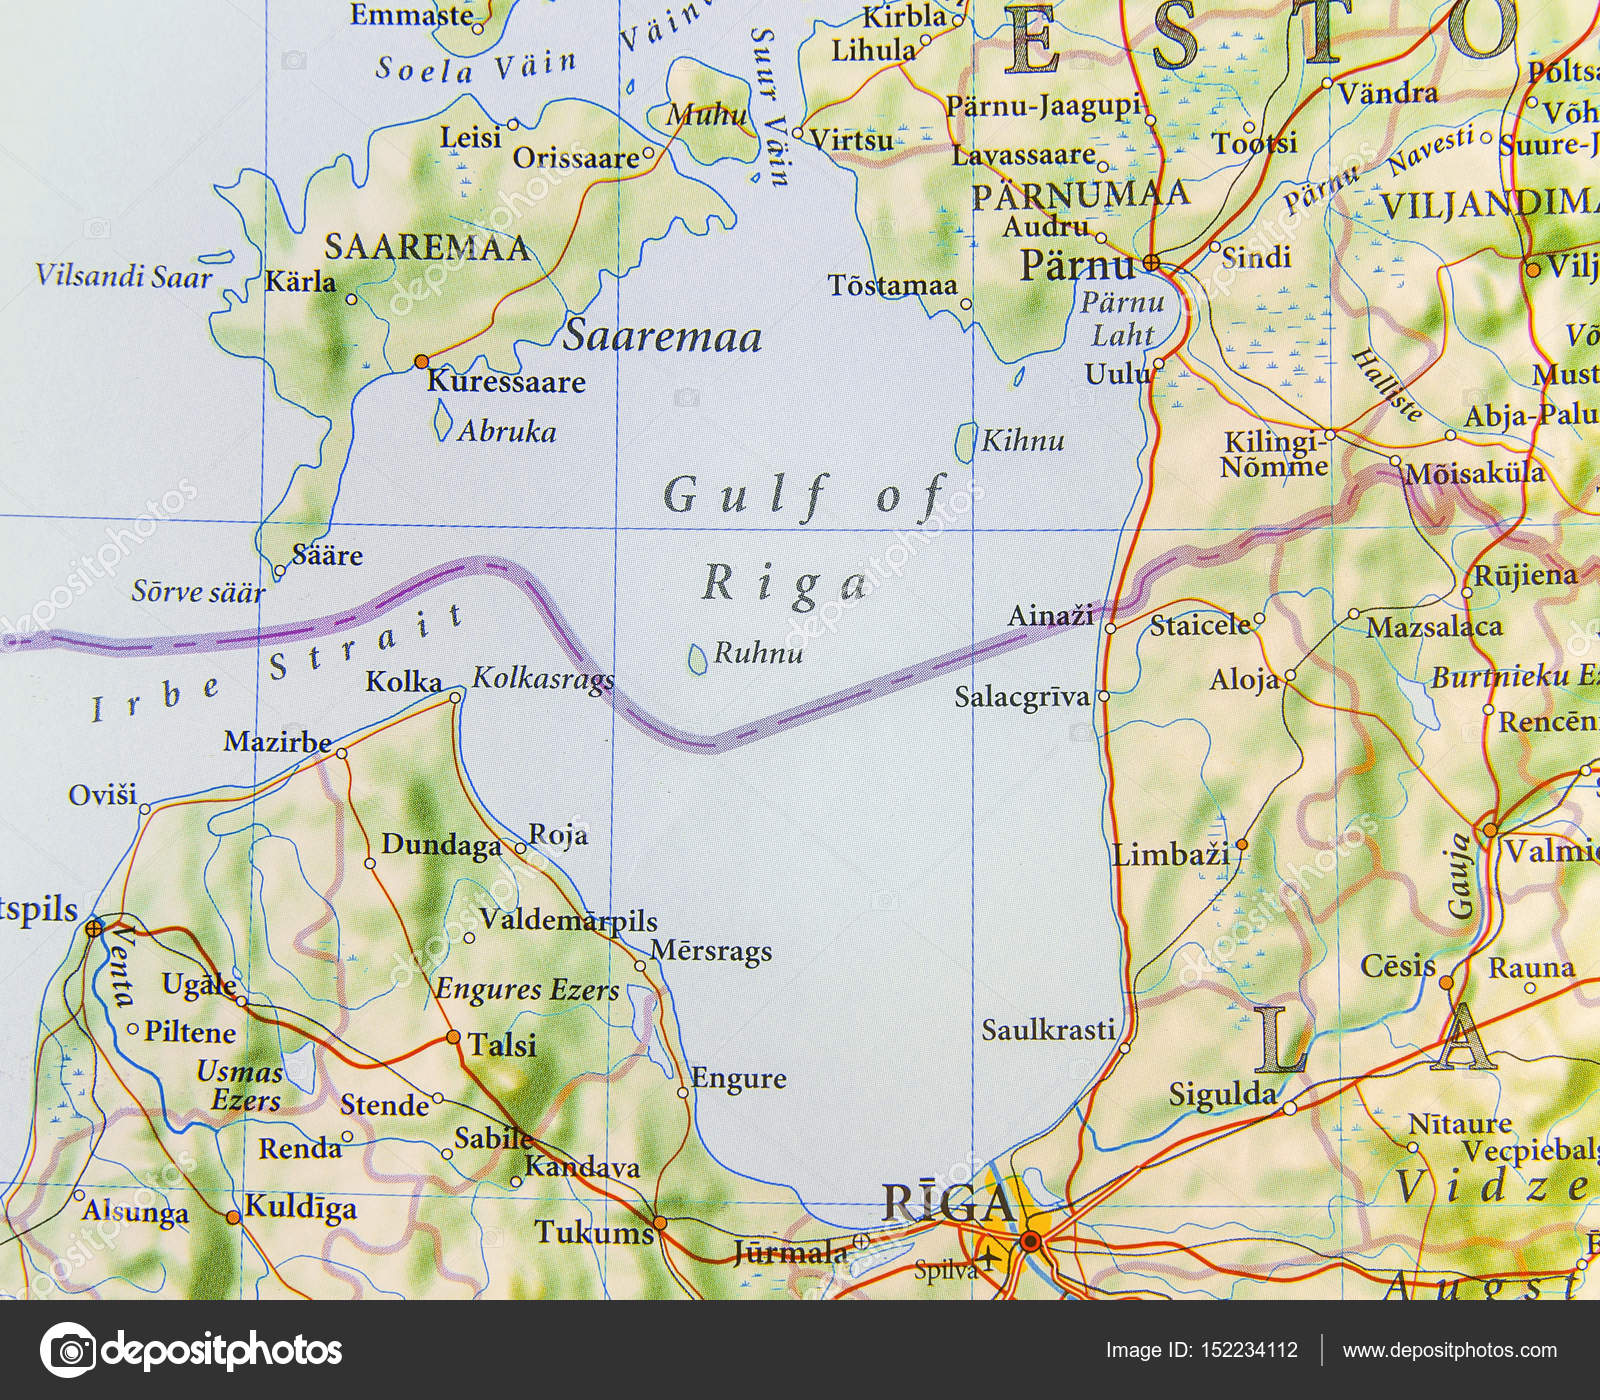 Geographic Map Of European Country Estonia With Gulf Of Riga - Estonia map download